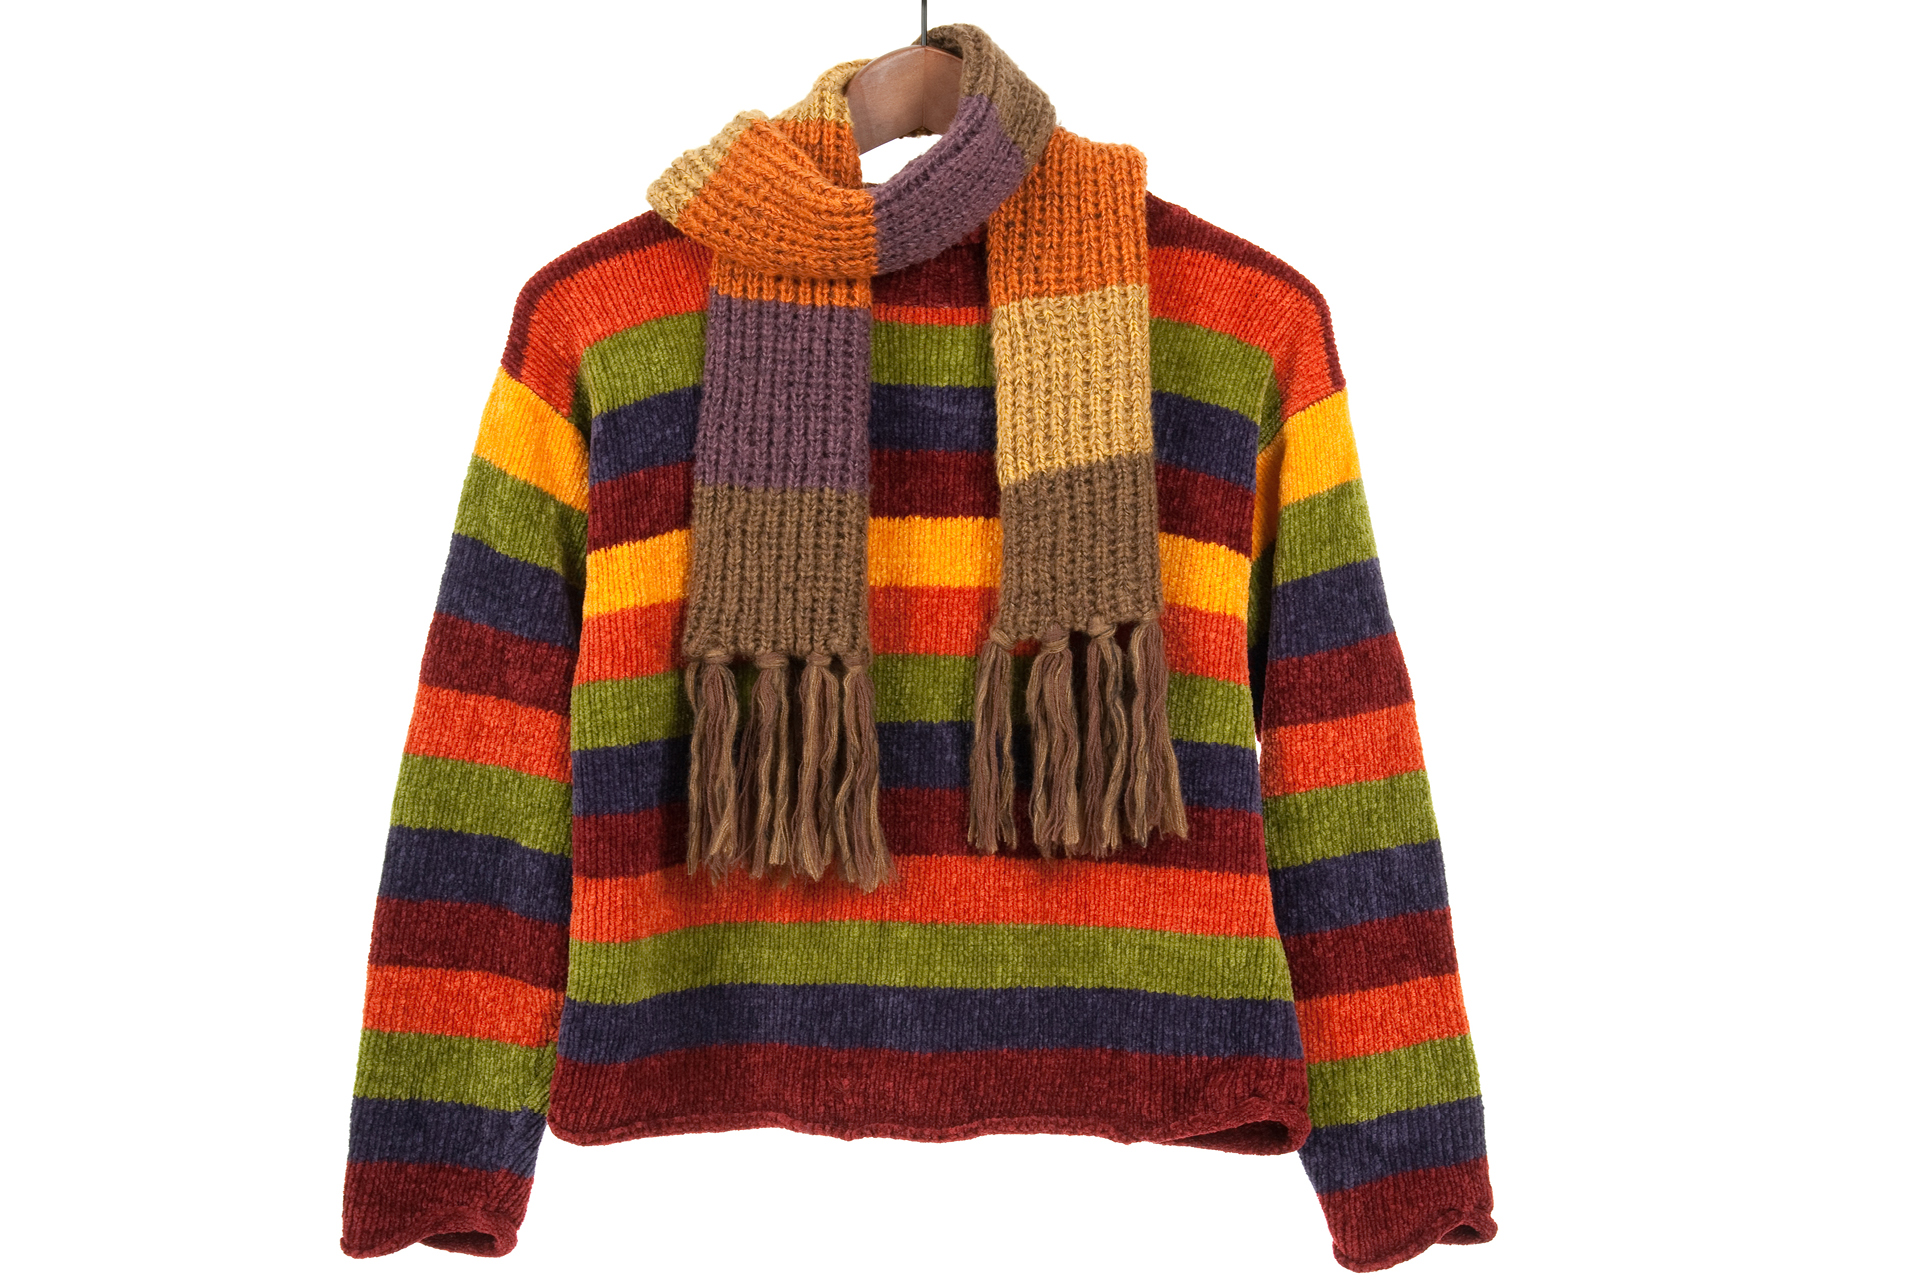 Know what's best for your knits!